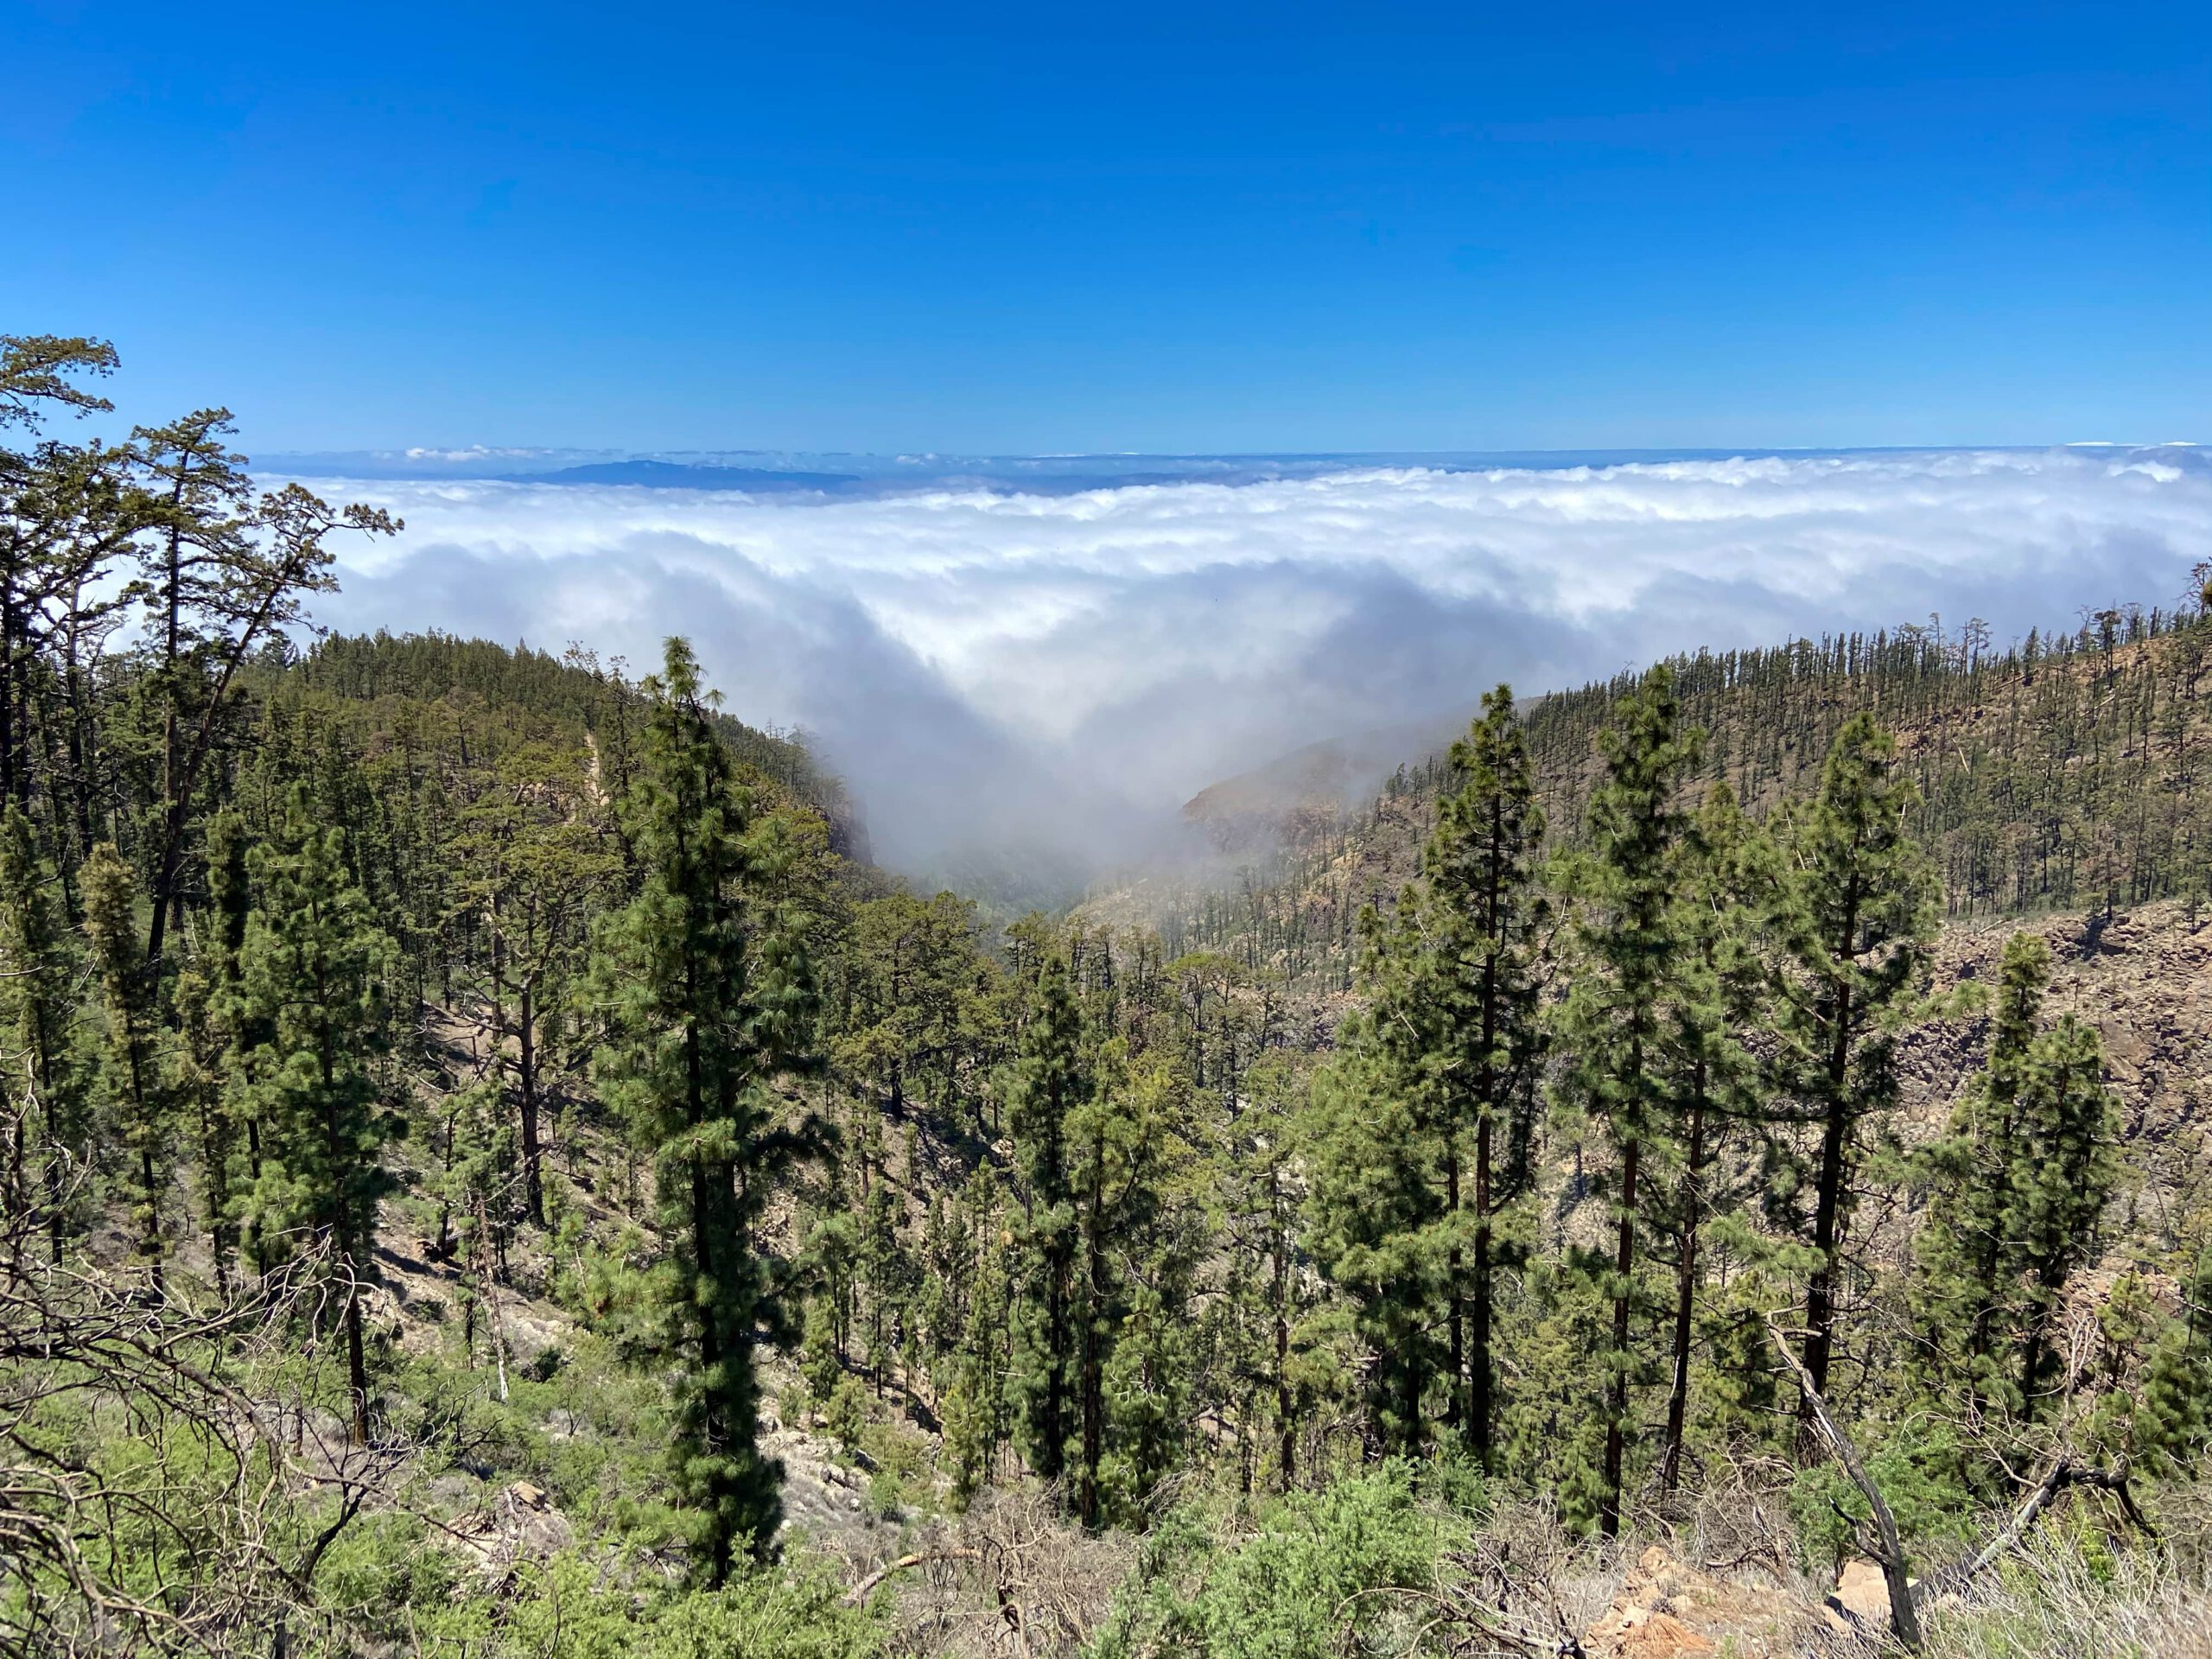 View from above the clouds to the neighbouring islands of La Gomera and La Palma